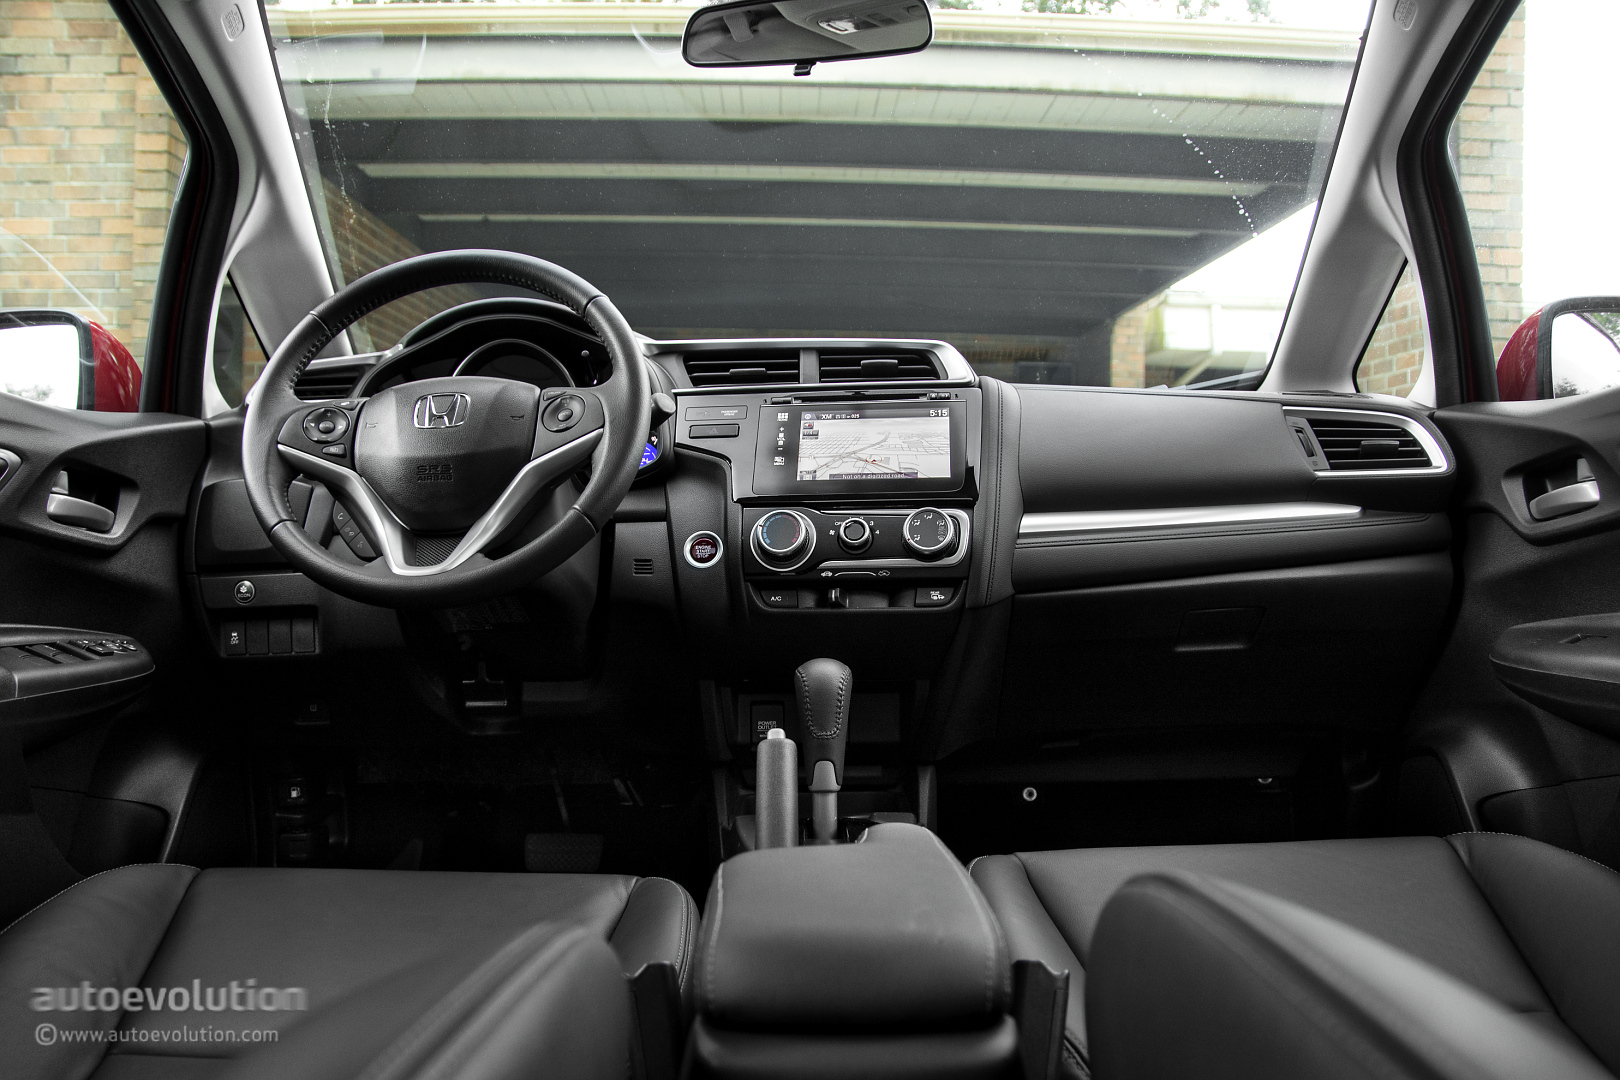 The Ride Is Really Nice And You Get Confident Brakes And Accurate Steering  On The New Honda Fit. The 1.5 Liter Engine Is Mated To A CVT Gearbox And  Delivers ...